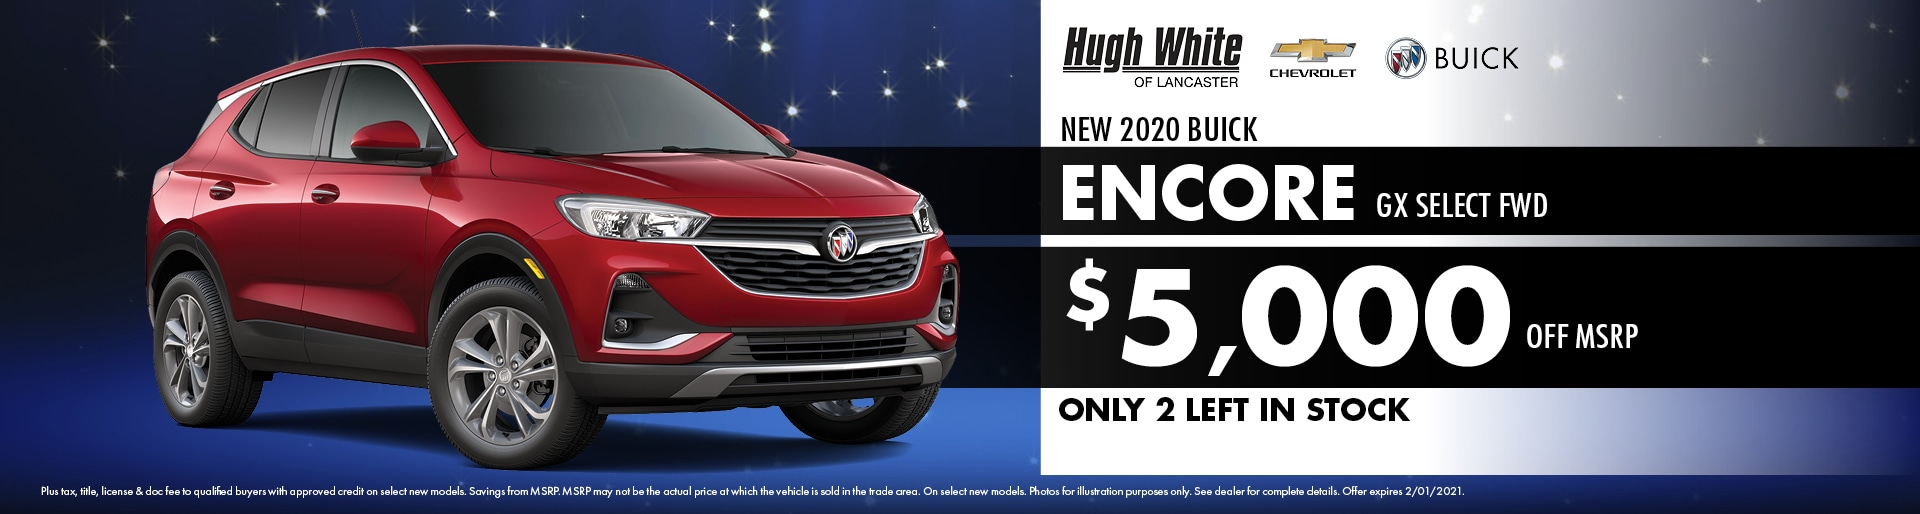 2020 Buick Encore Special Offer | Hugh White Chevy Buick Lancaster, OH